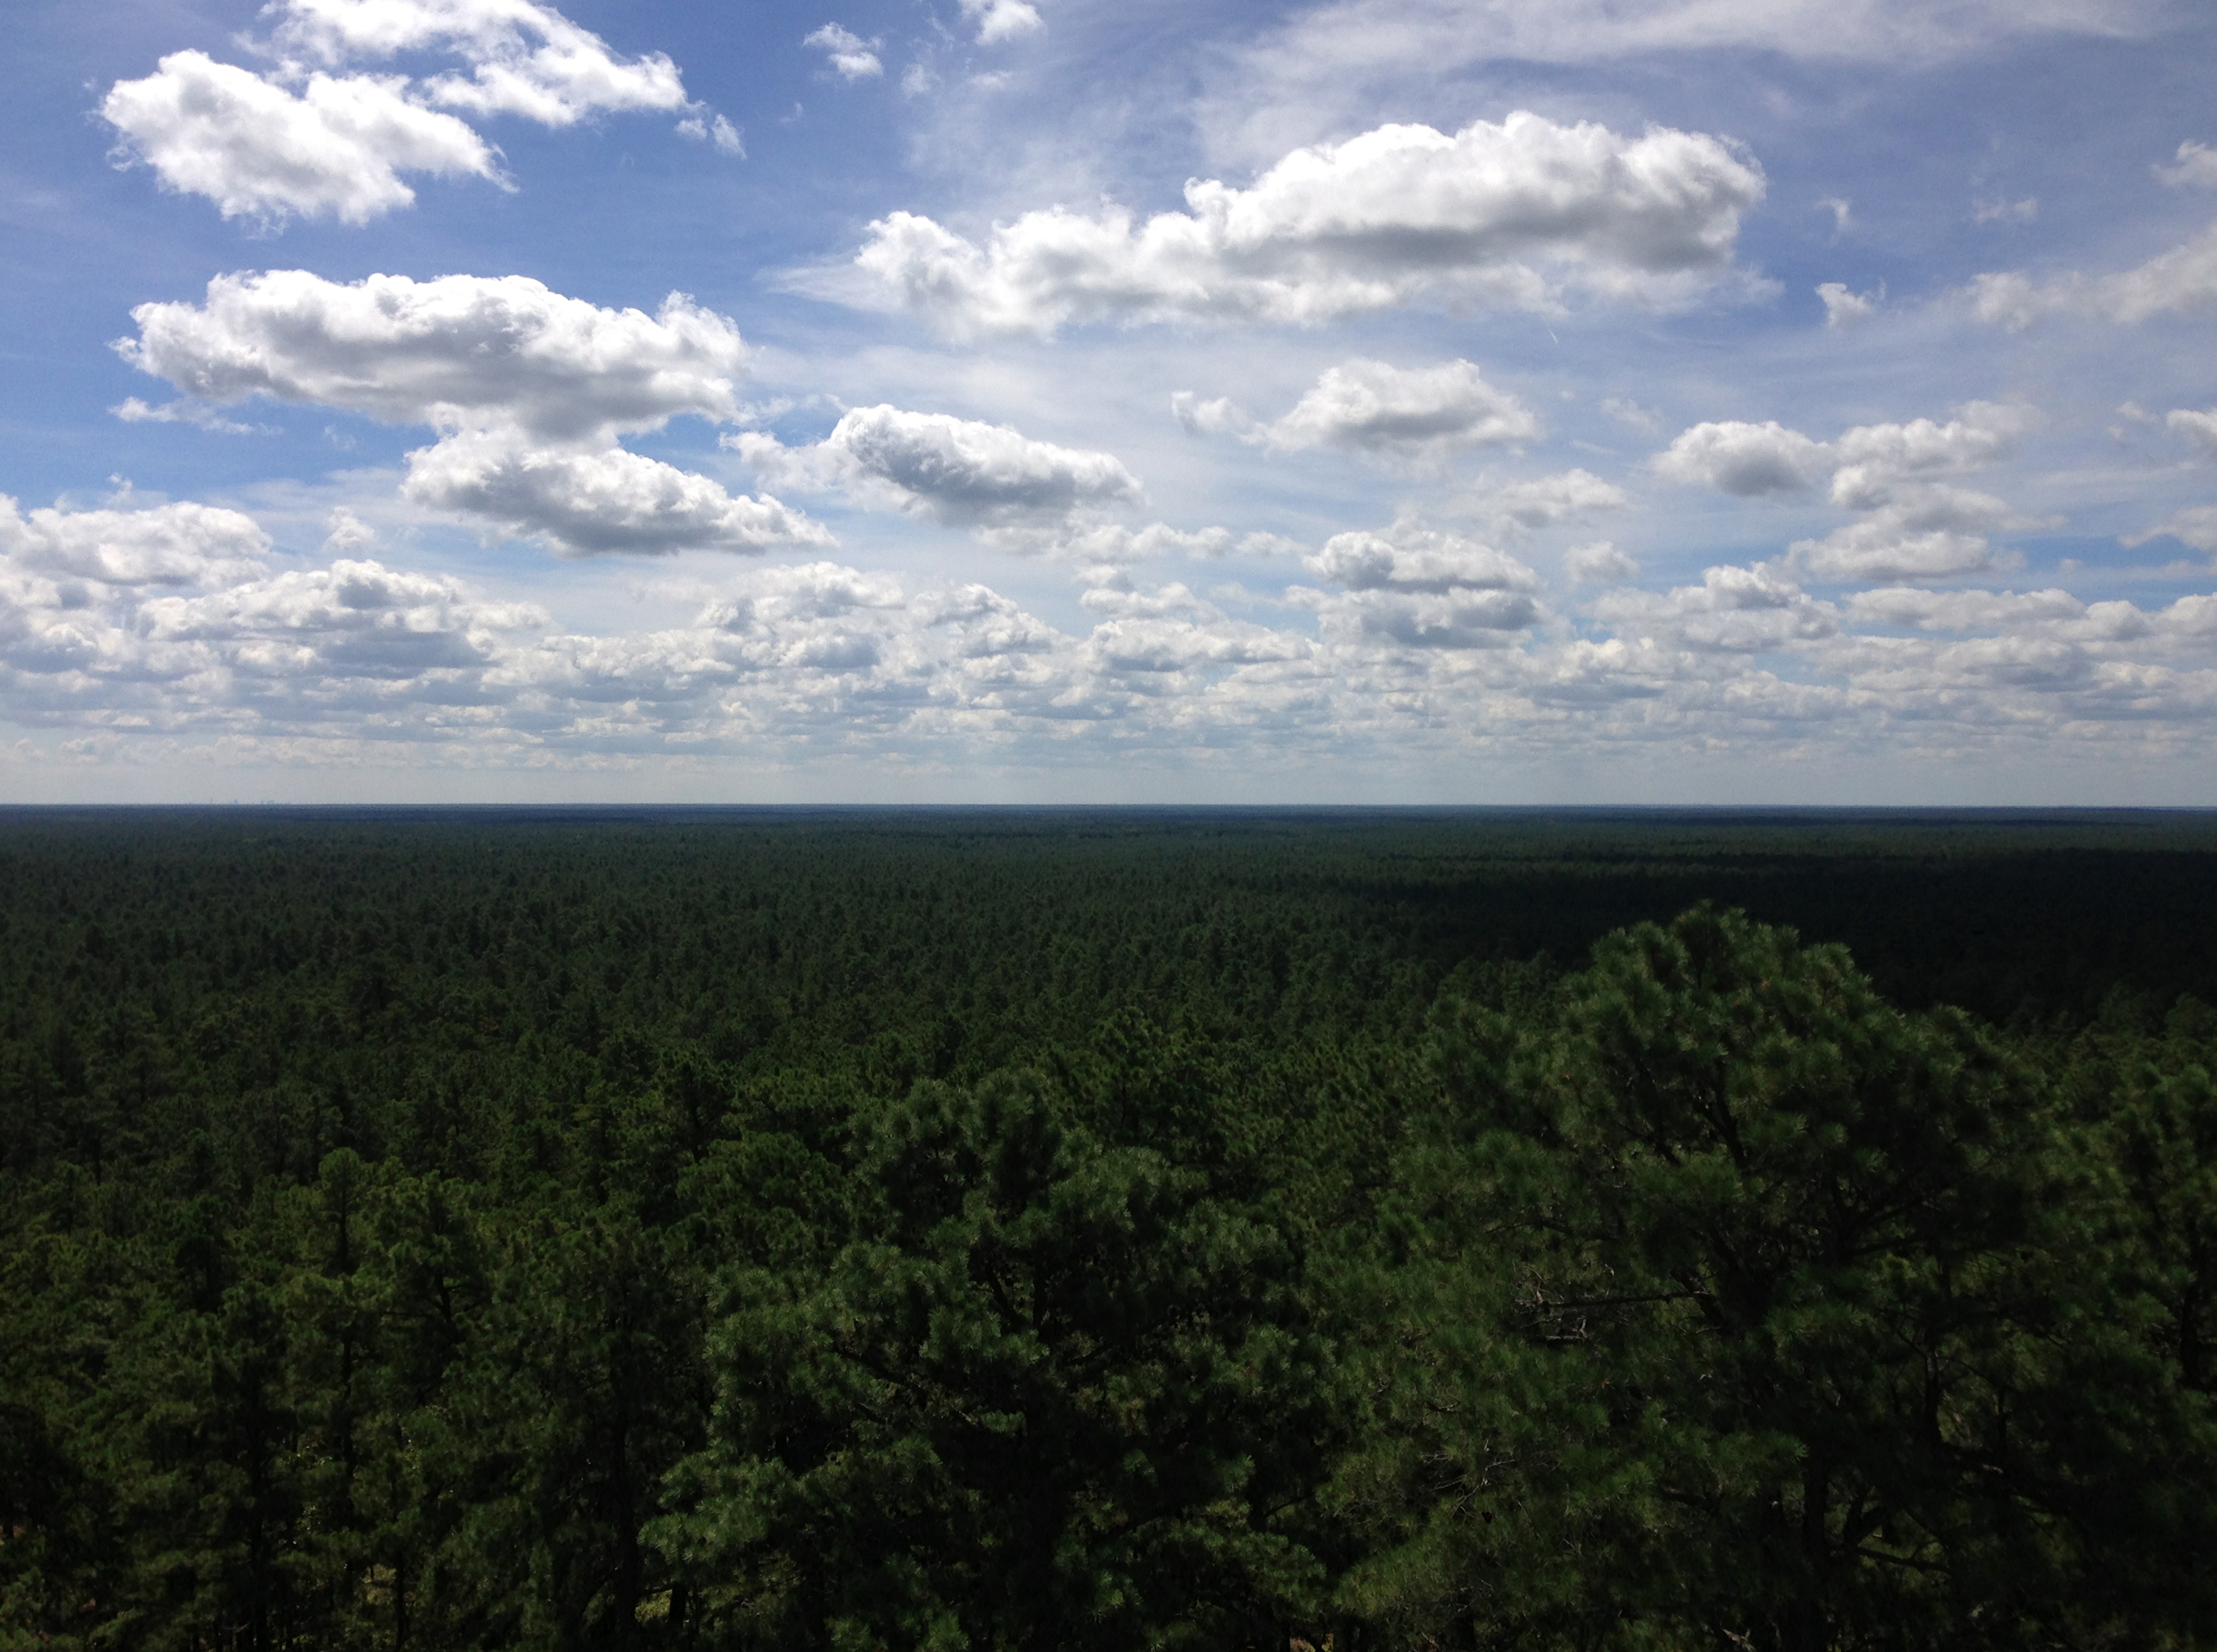 File:2014-08-29 11 54 45 View south from the fire tower on Apple Pie